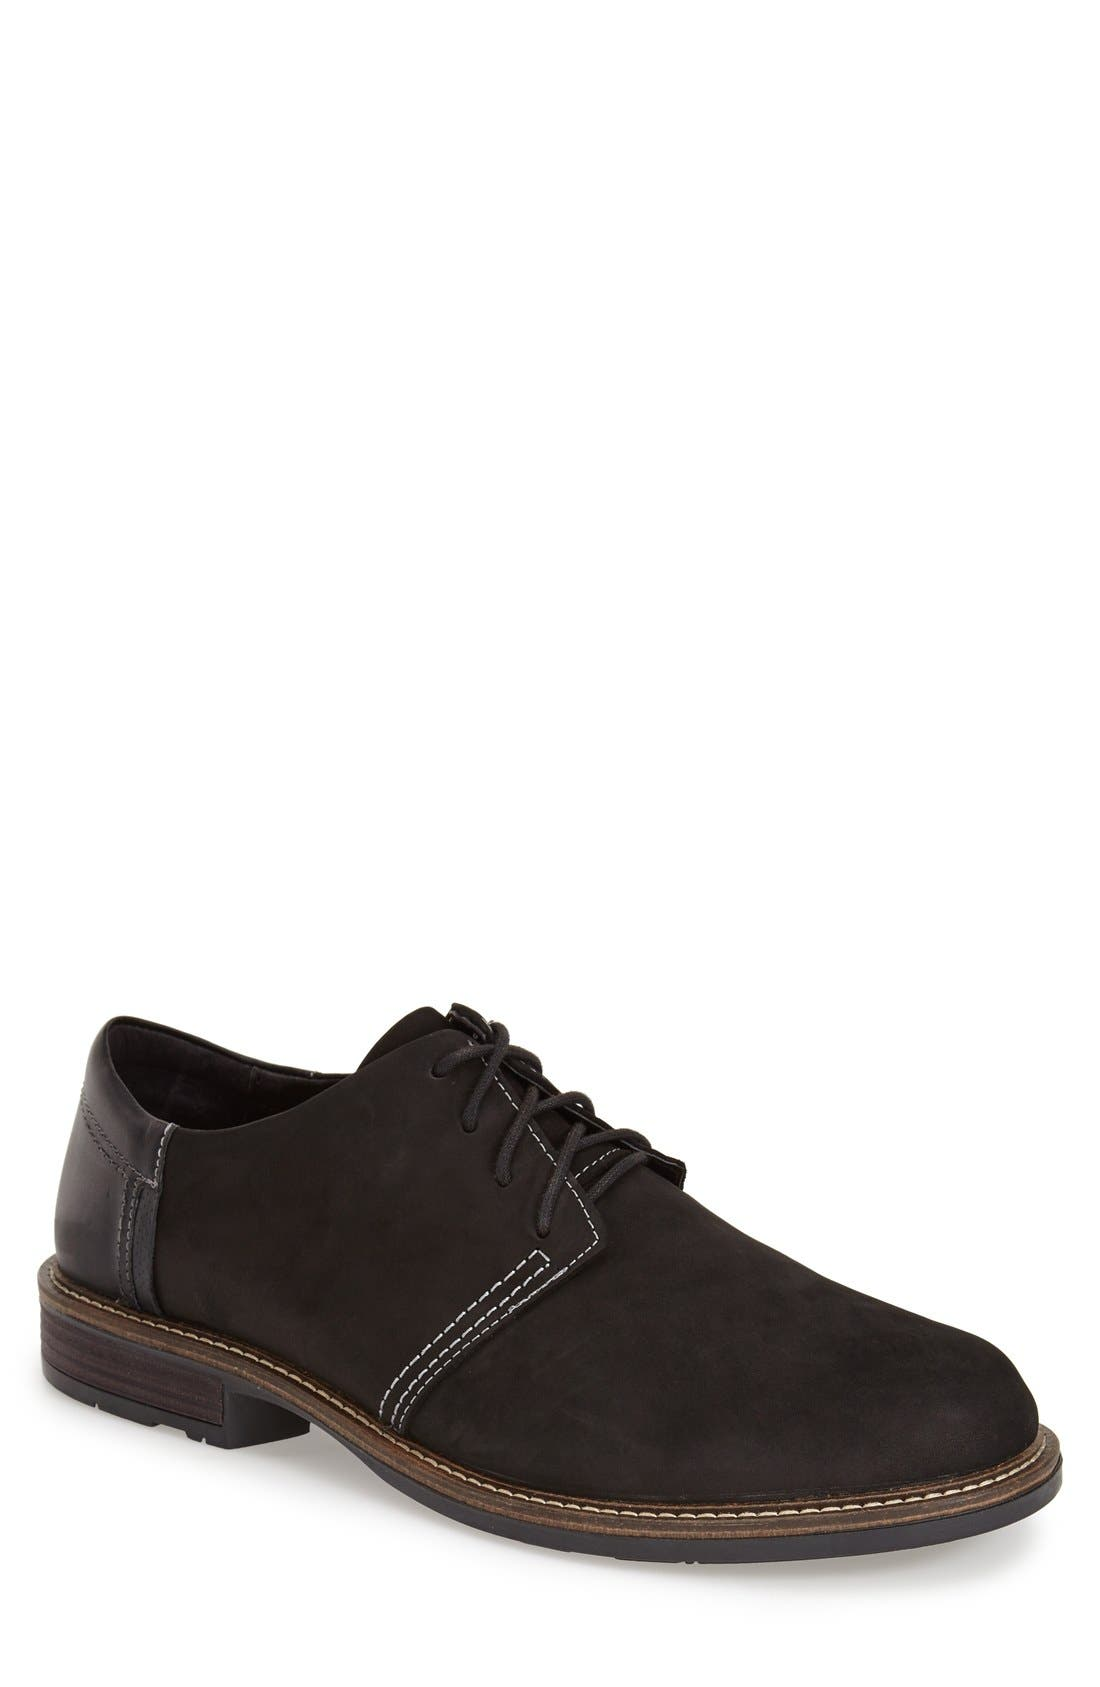 NAOT Plain Toe Derby